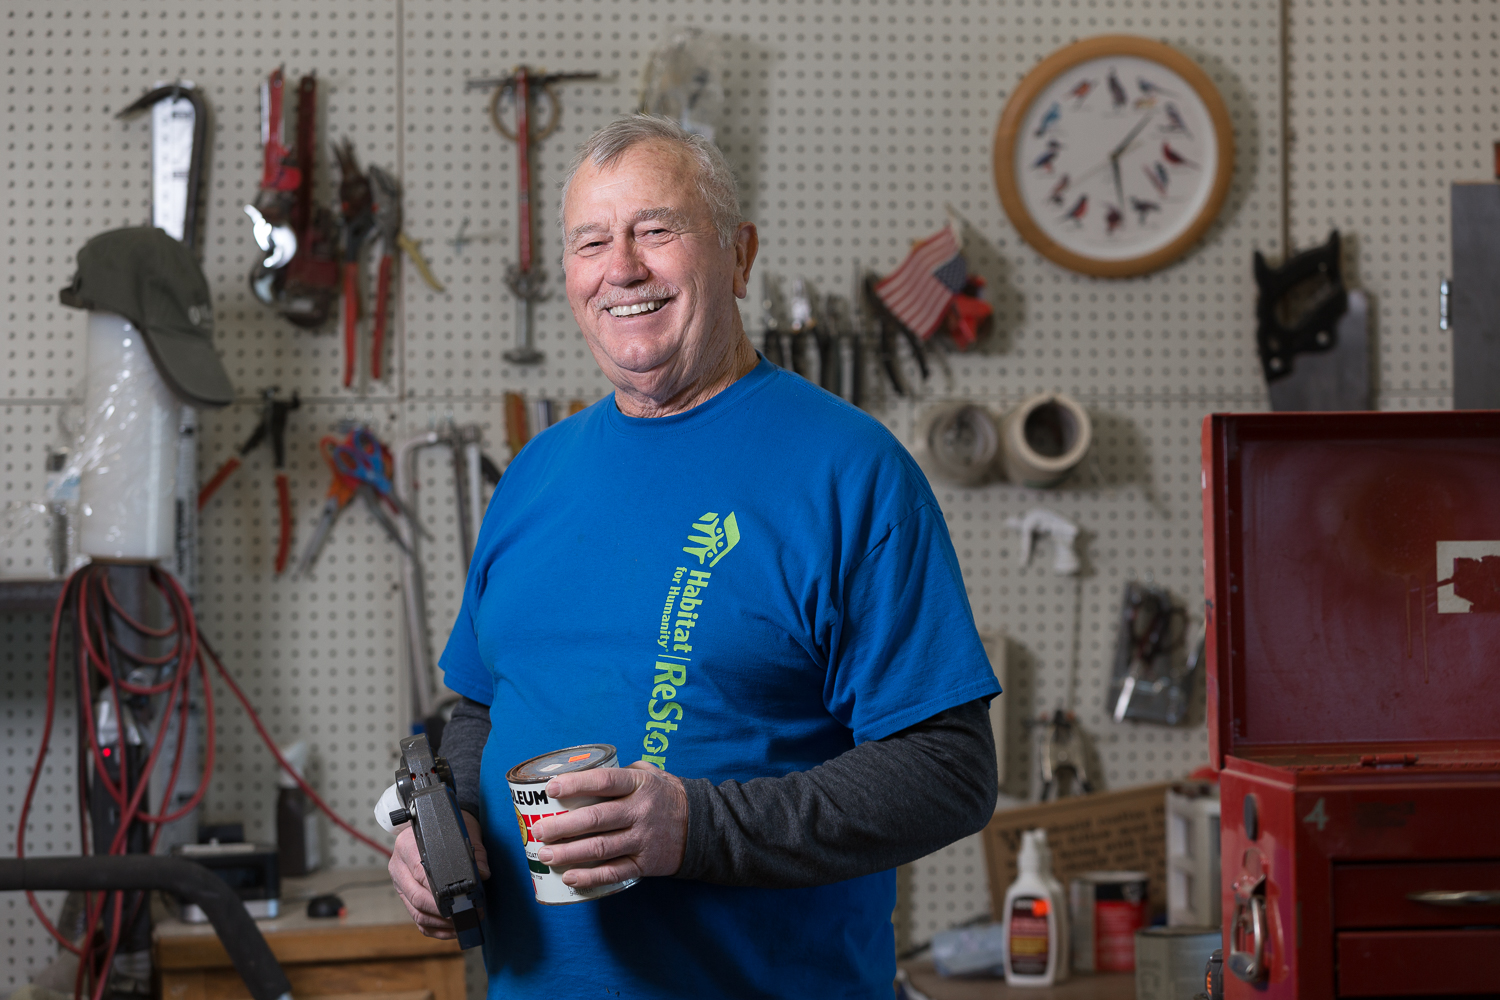 Habitat for Humanity and ReStore - Buddy Caton